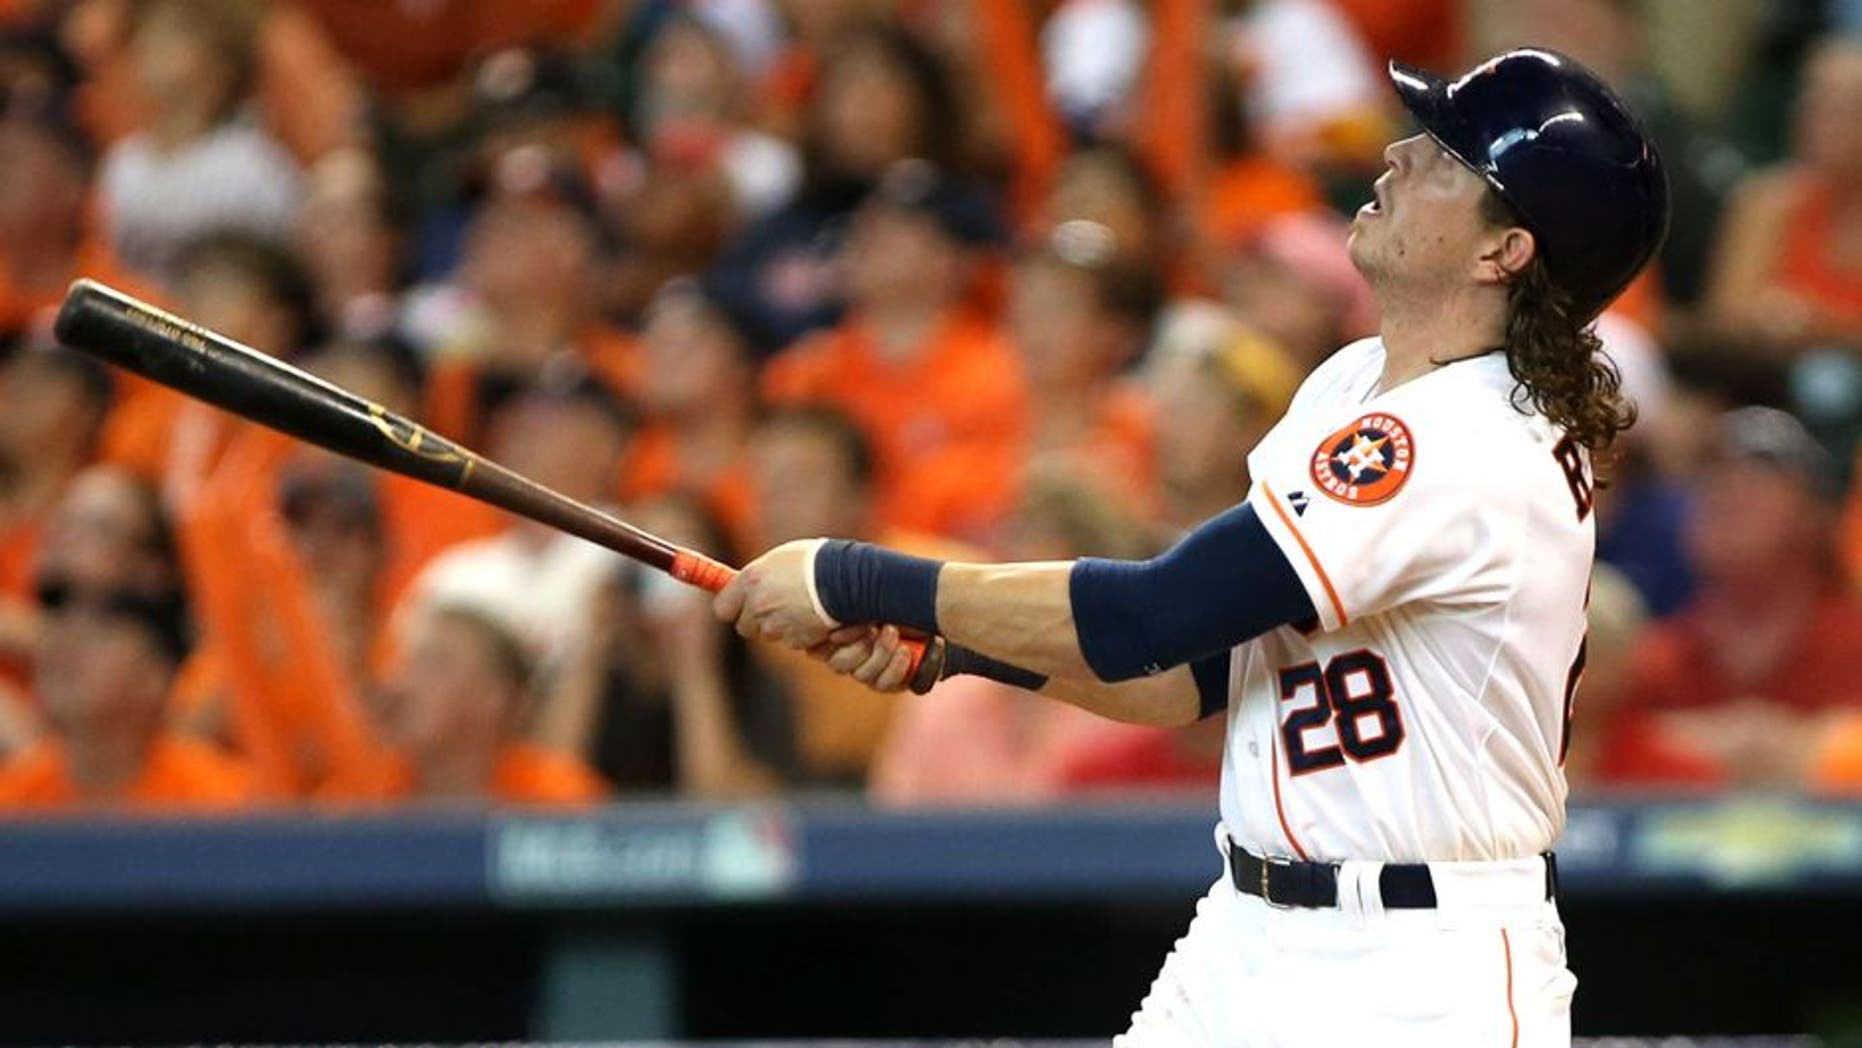 Oct 11, 2015; Houston, TX, USA; Houston Astros left fielder Colby Rasmus (28) hits a single off of the roof against the Kansas City Royals in game three of the ALDS at Minute Maid Park. Astros won 4-2. Mandatory Credit: Troy Taormina-USA TODAY Sports